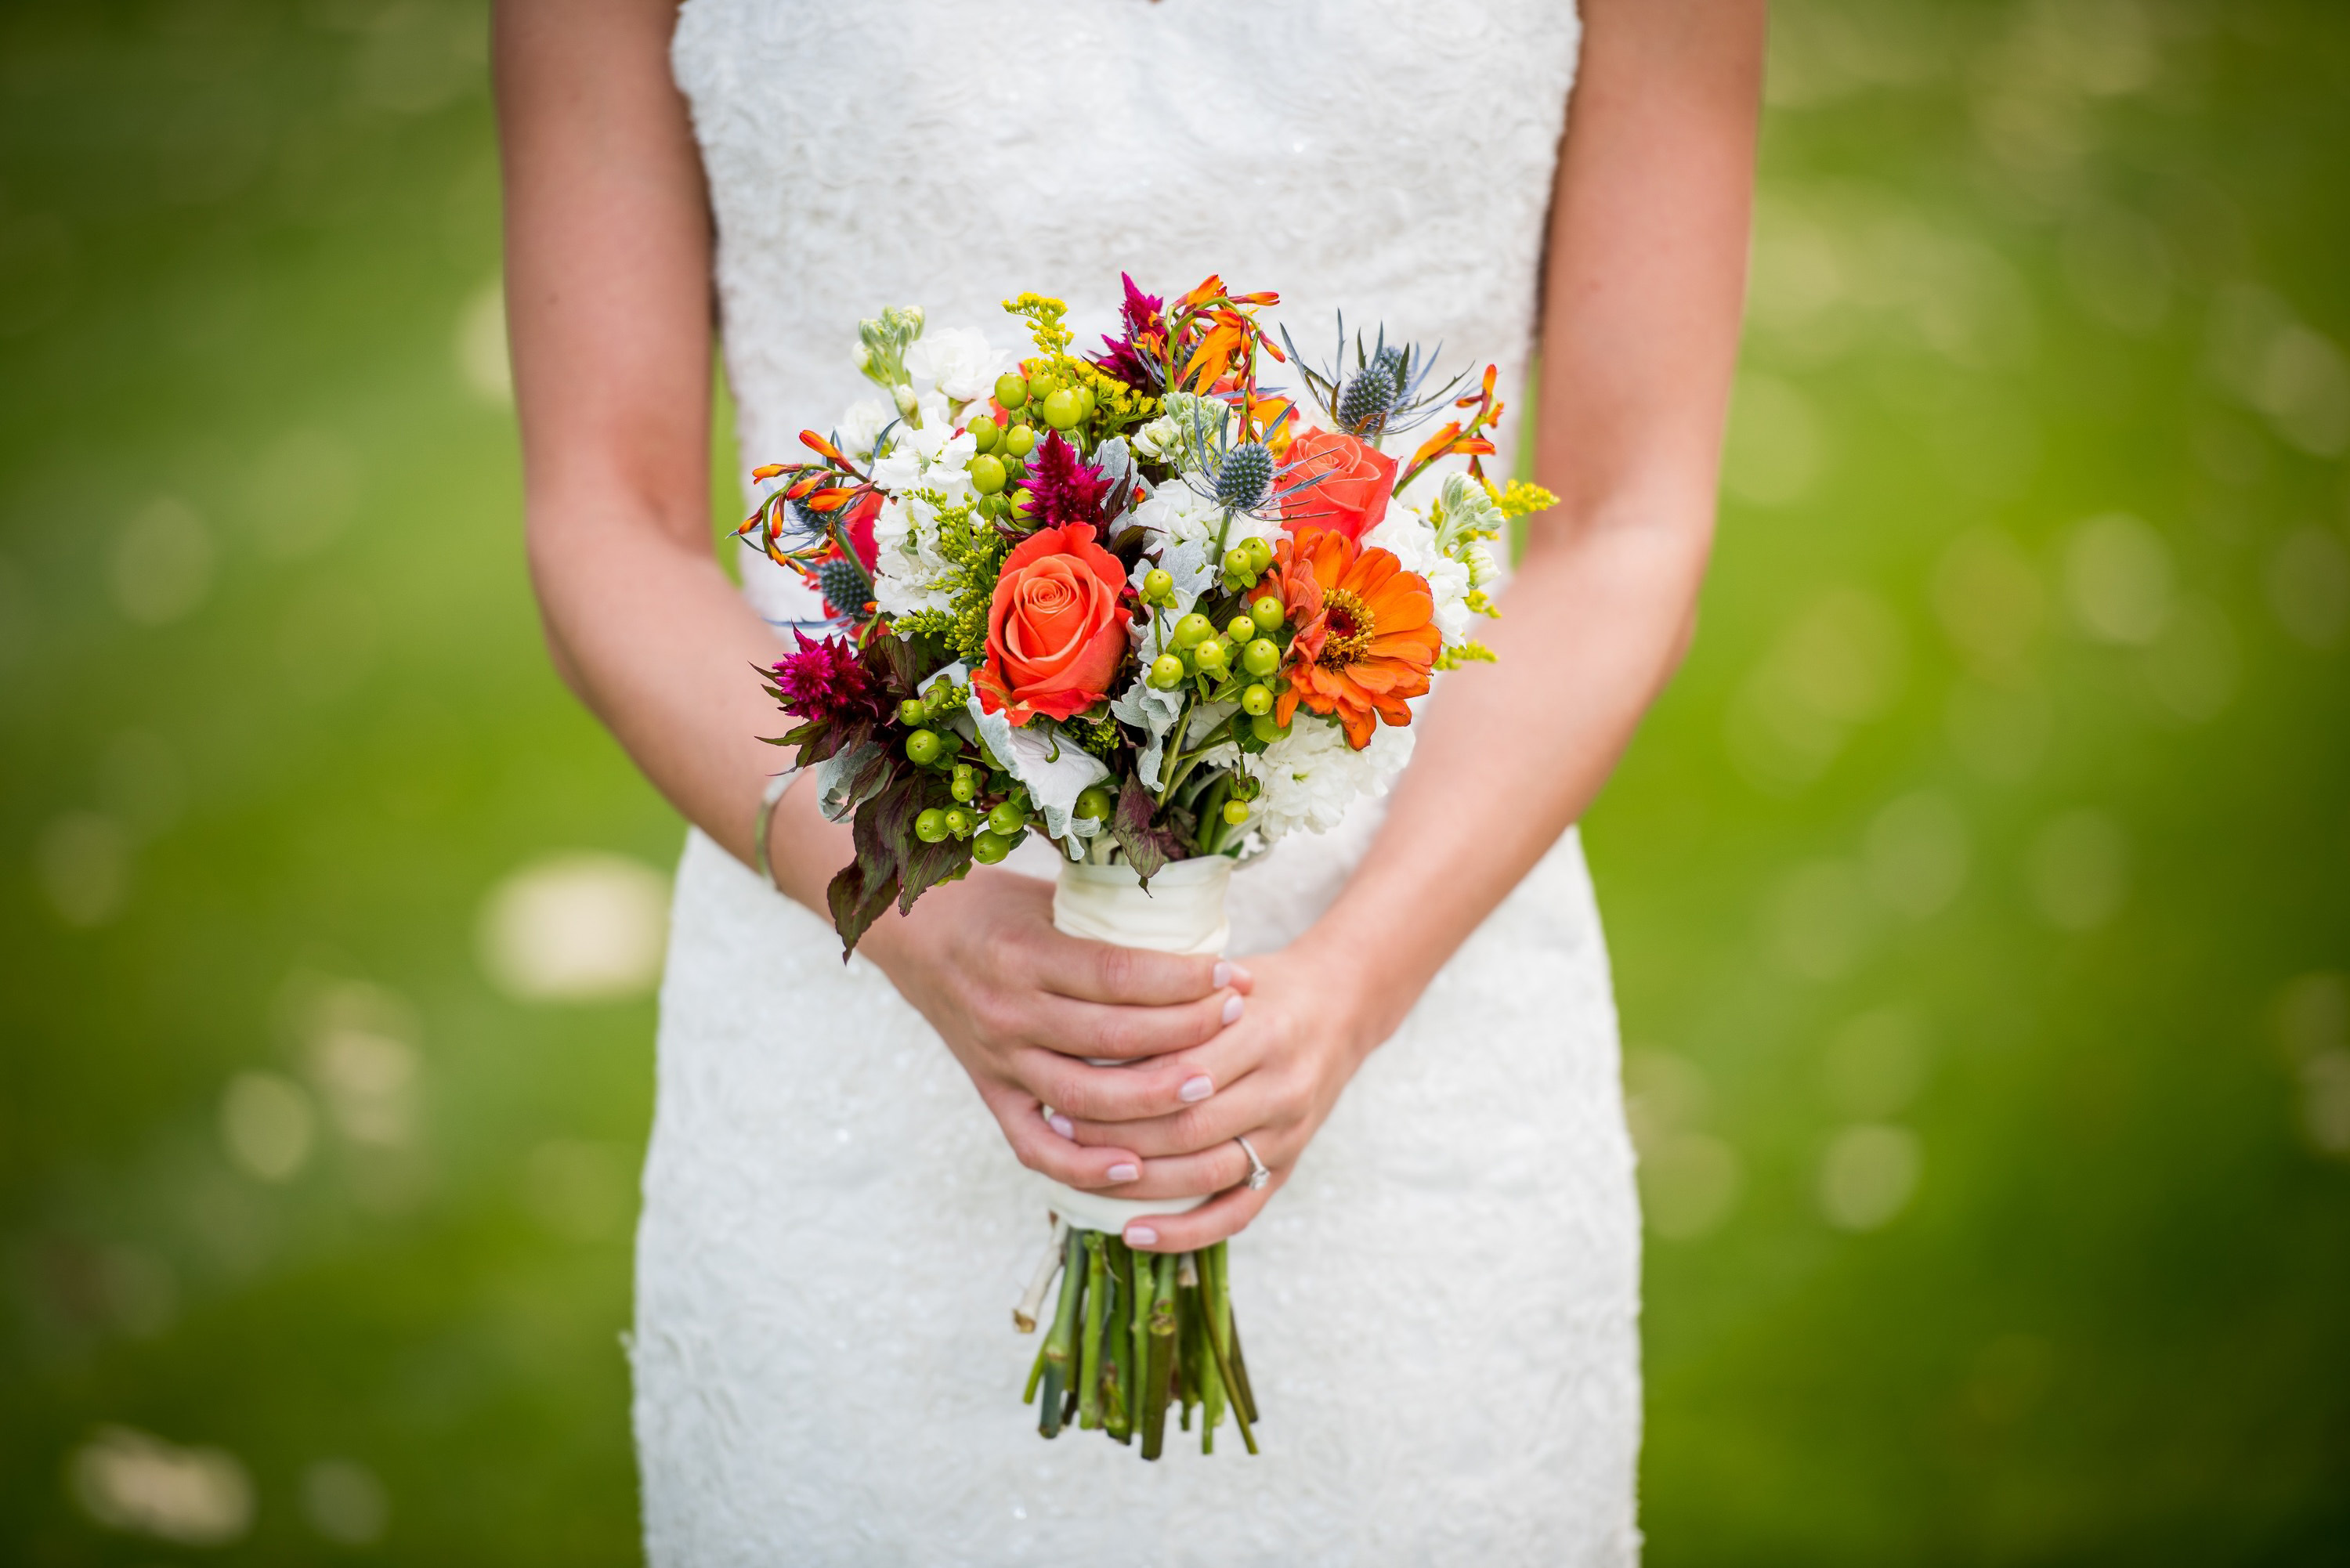 Woman In A White Dress With Bouquet Of Flowers Image Free Stock